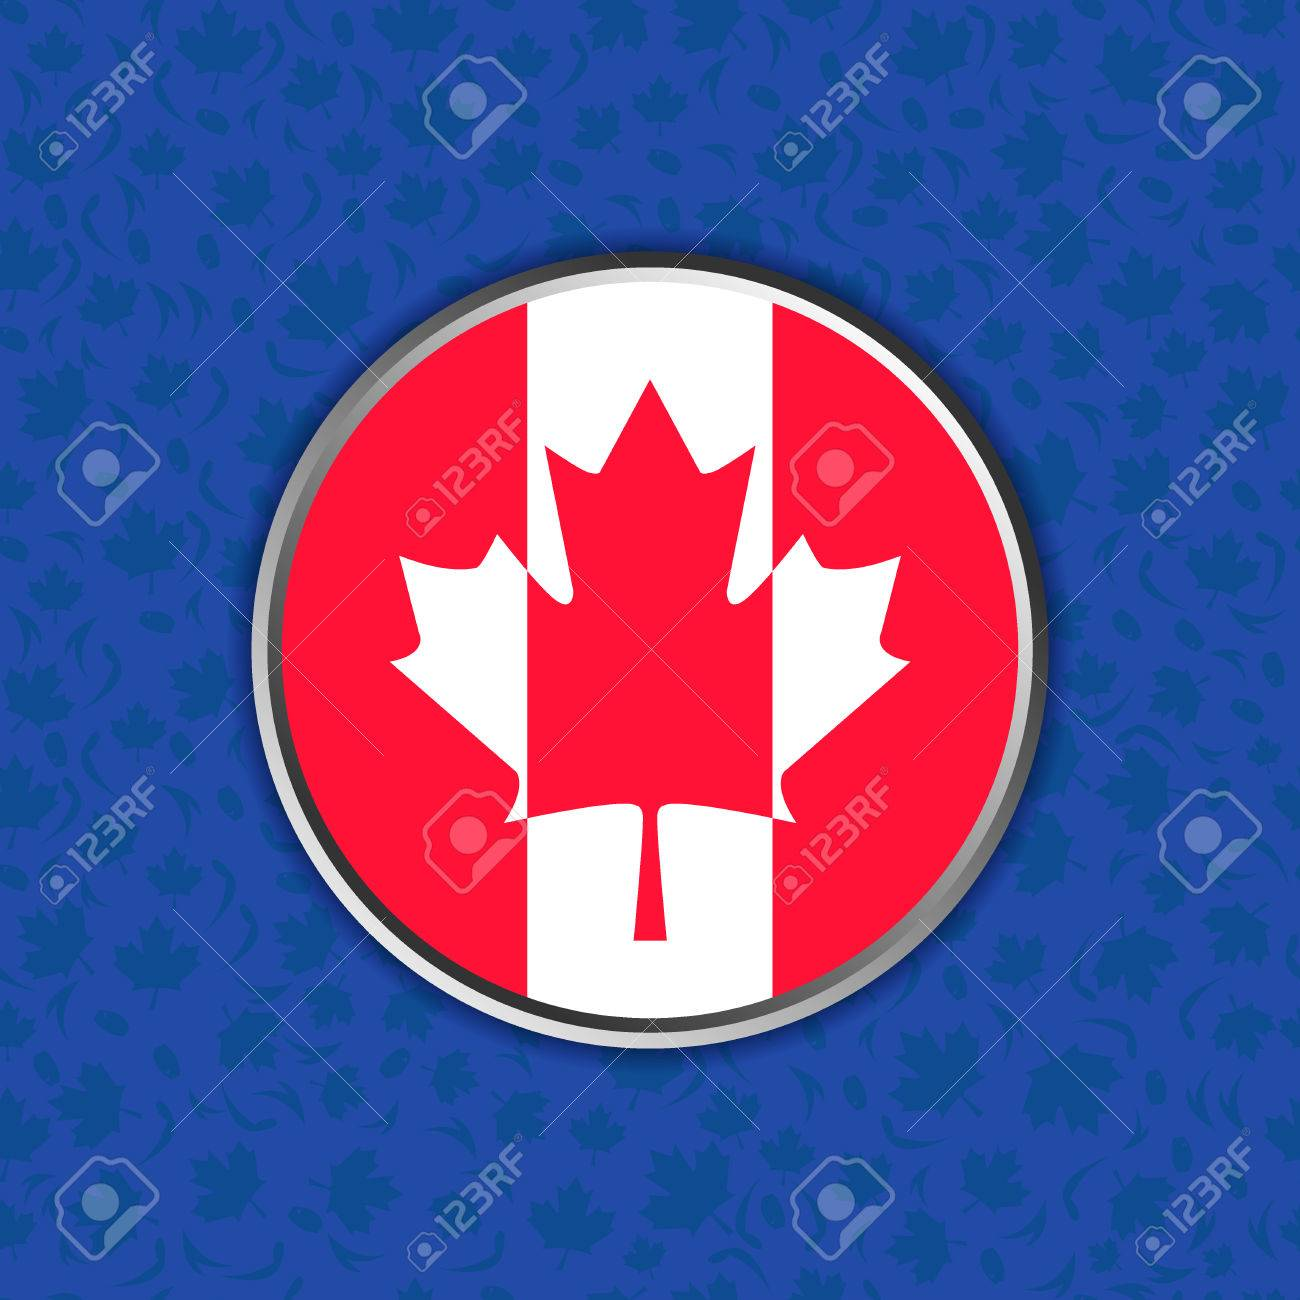 Flag Of Canada In Web Button Isolated On World Cup Of Ice Hockey